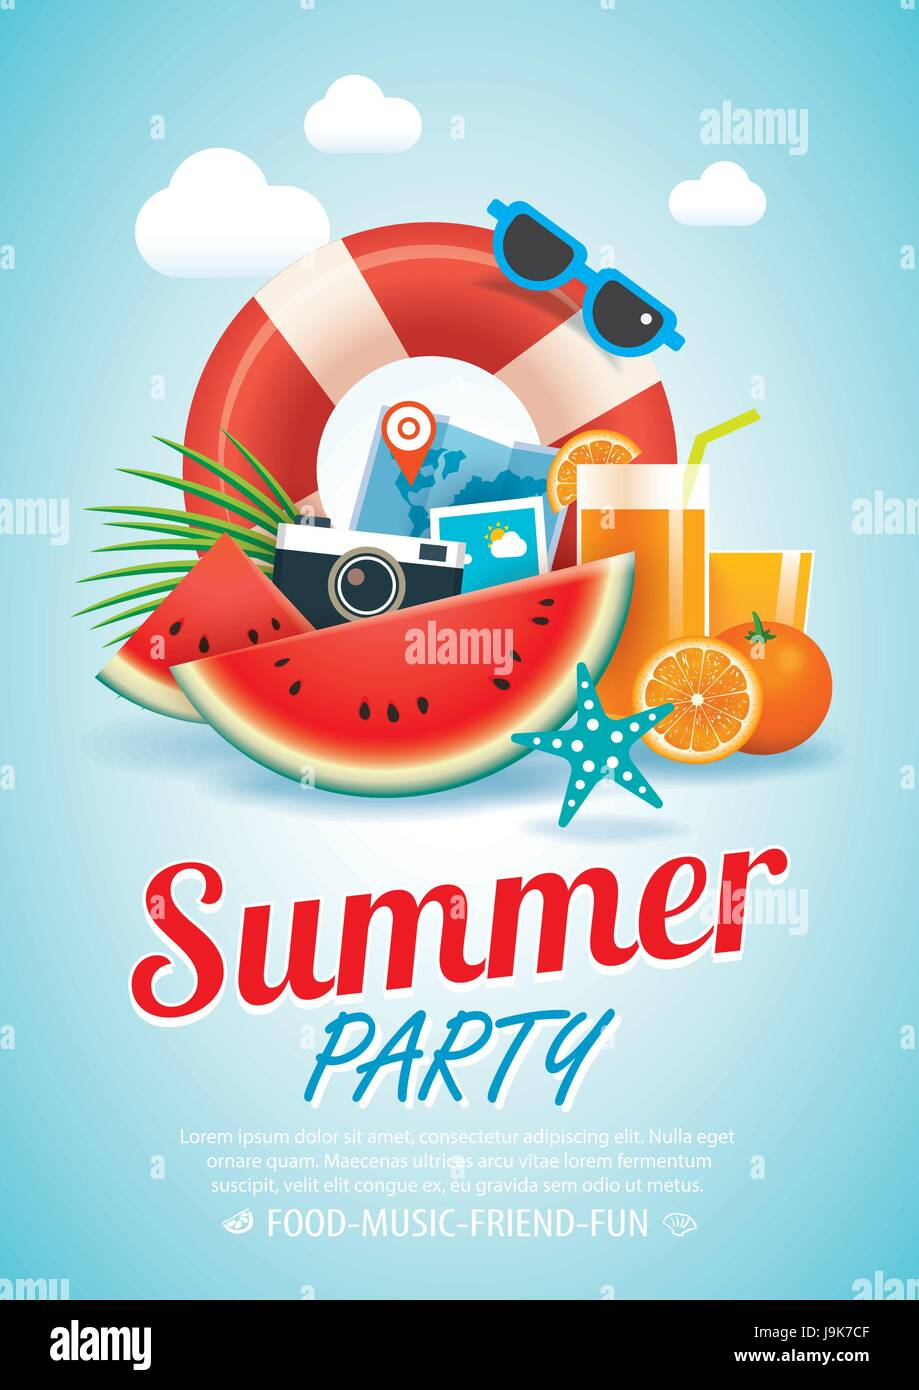 summer beach party invitation poster background and elements in A4 ...